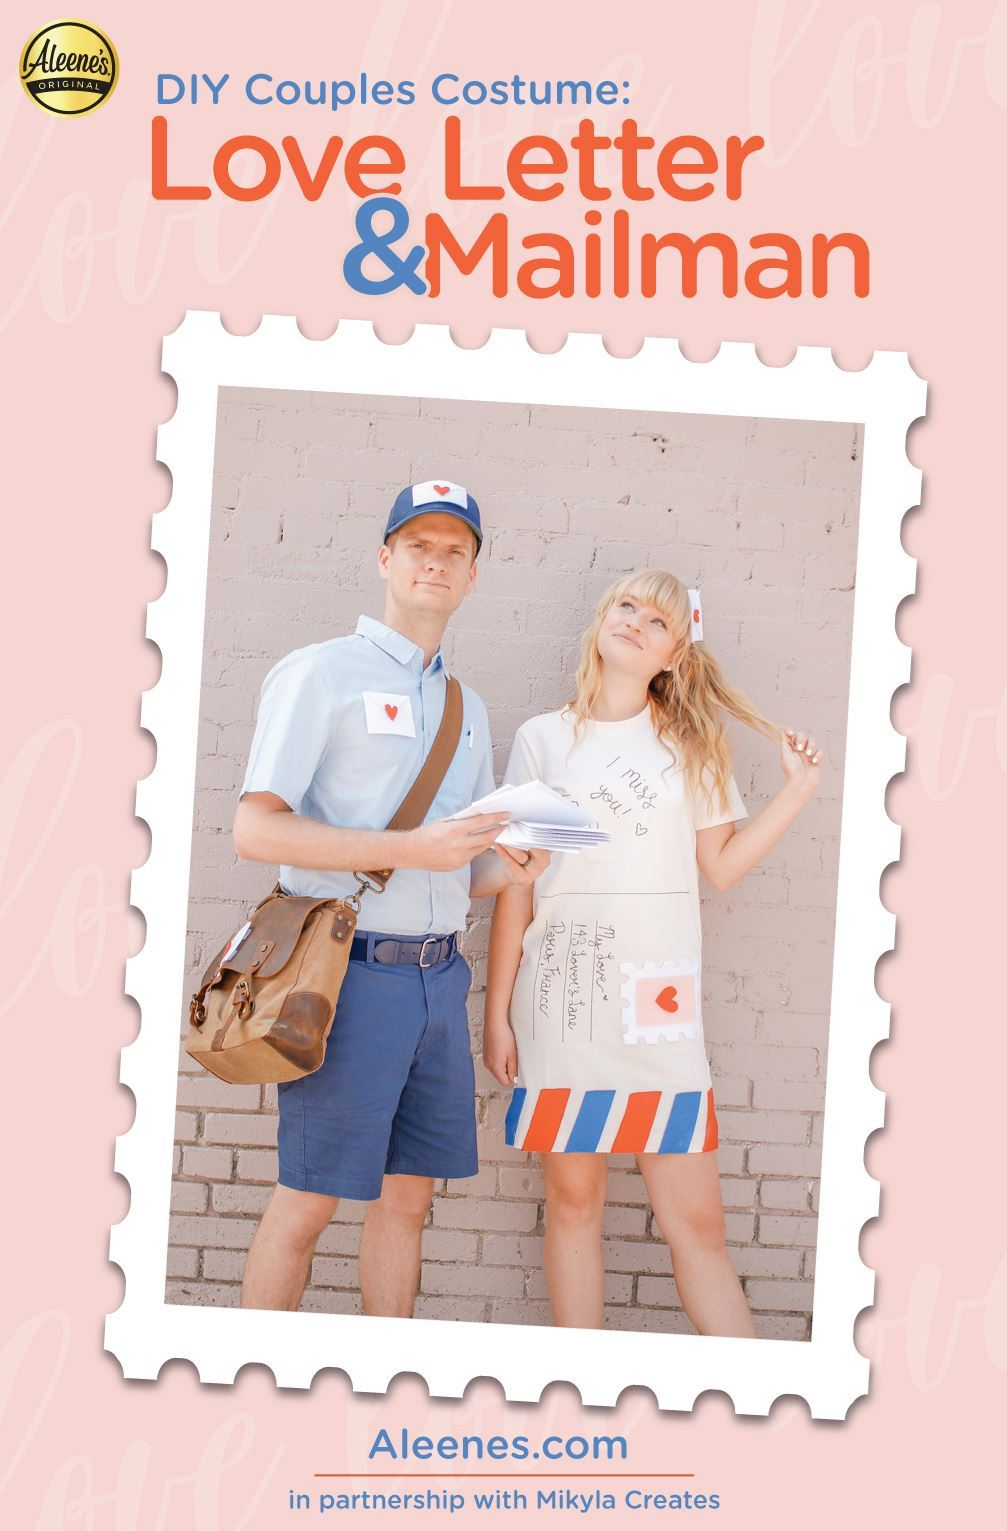 Picture of Love Letter & Mailman DIY Couples Costume